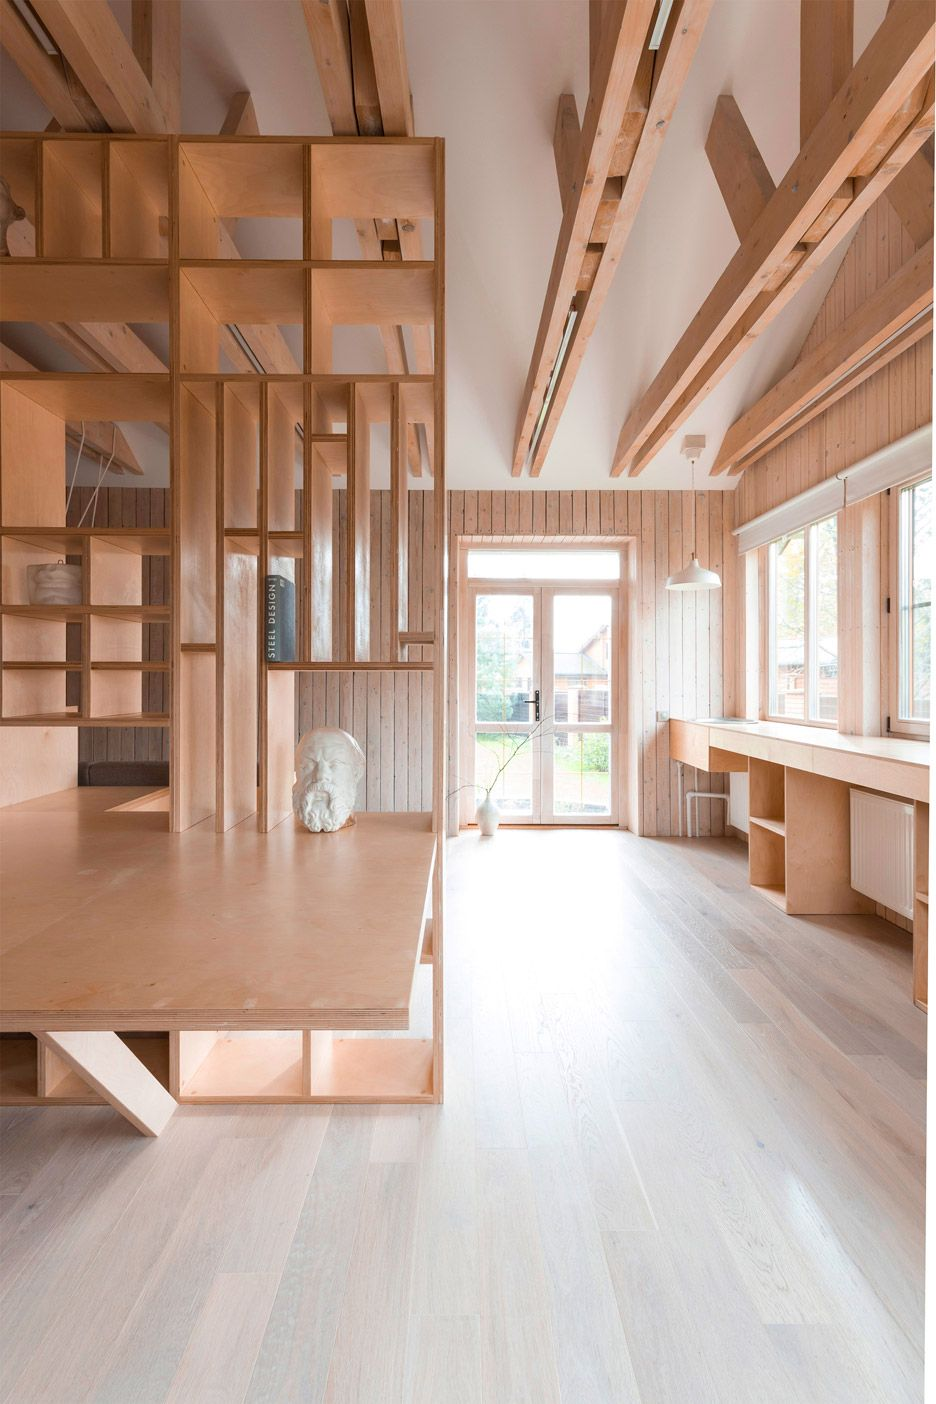 Plywood Artist's Studio By Ruetemple Combines Areas For